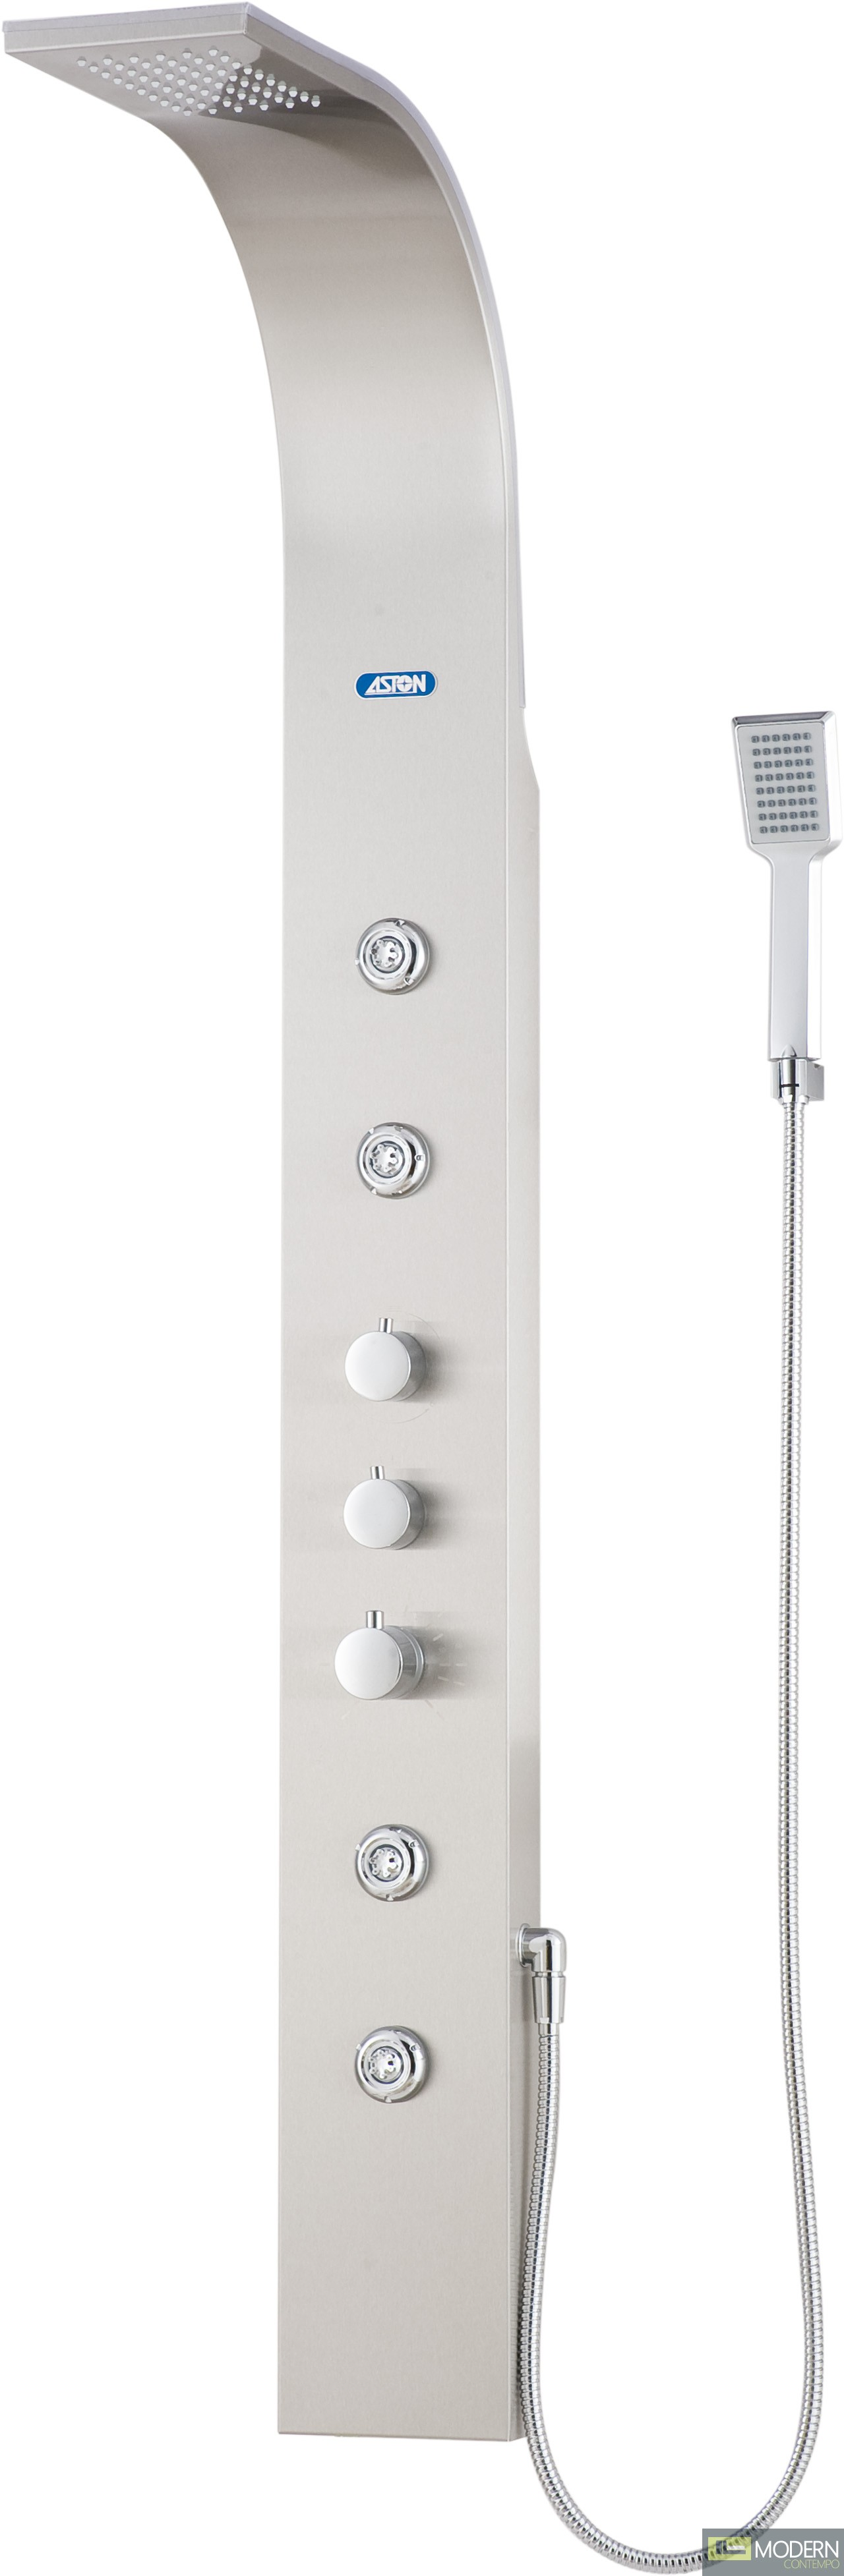 Shower Panel System with Four Body Jets in Stainless Steel